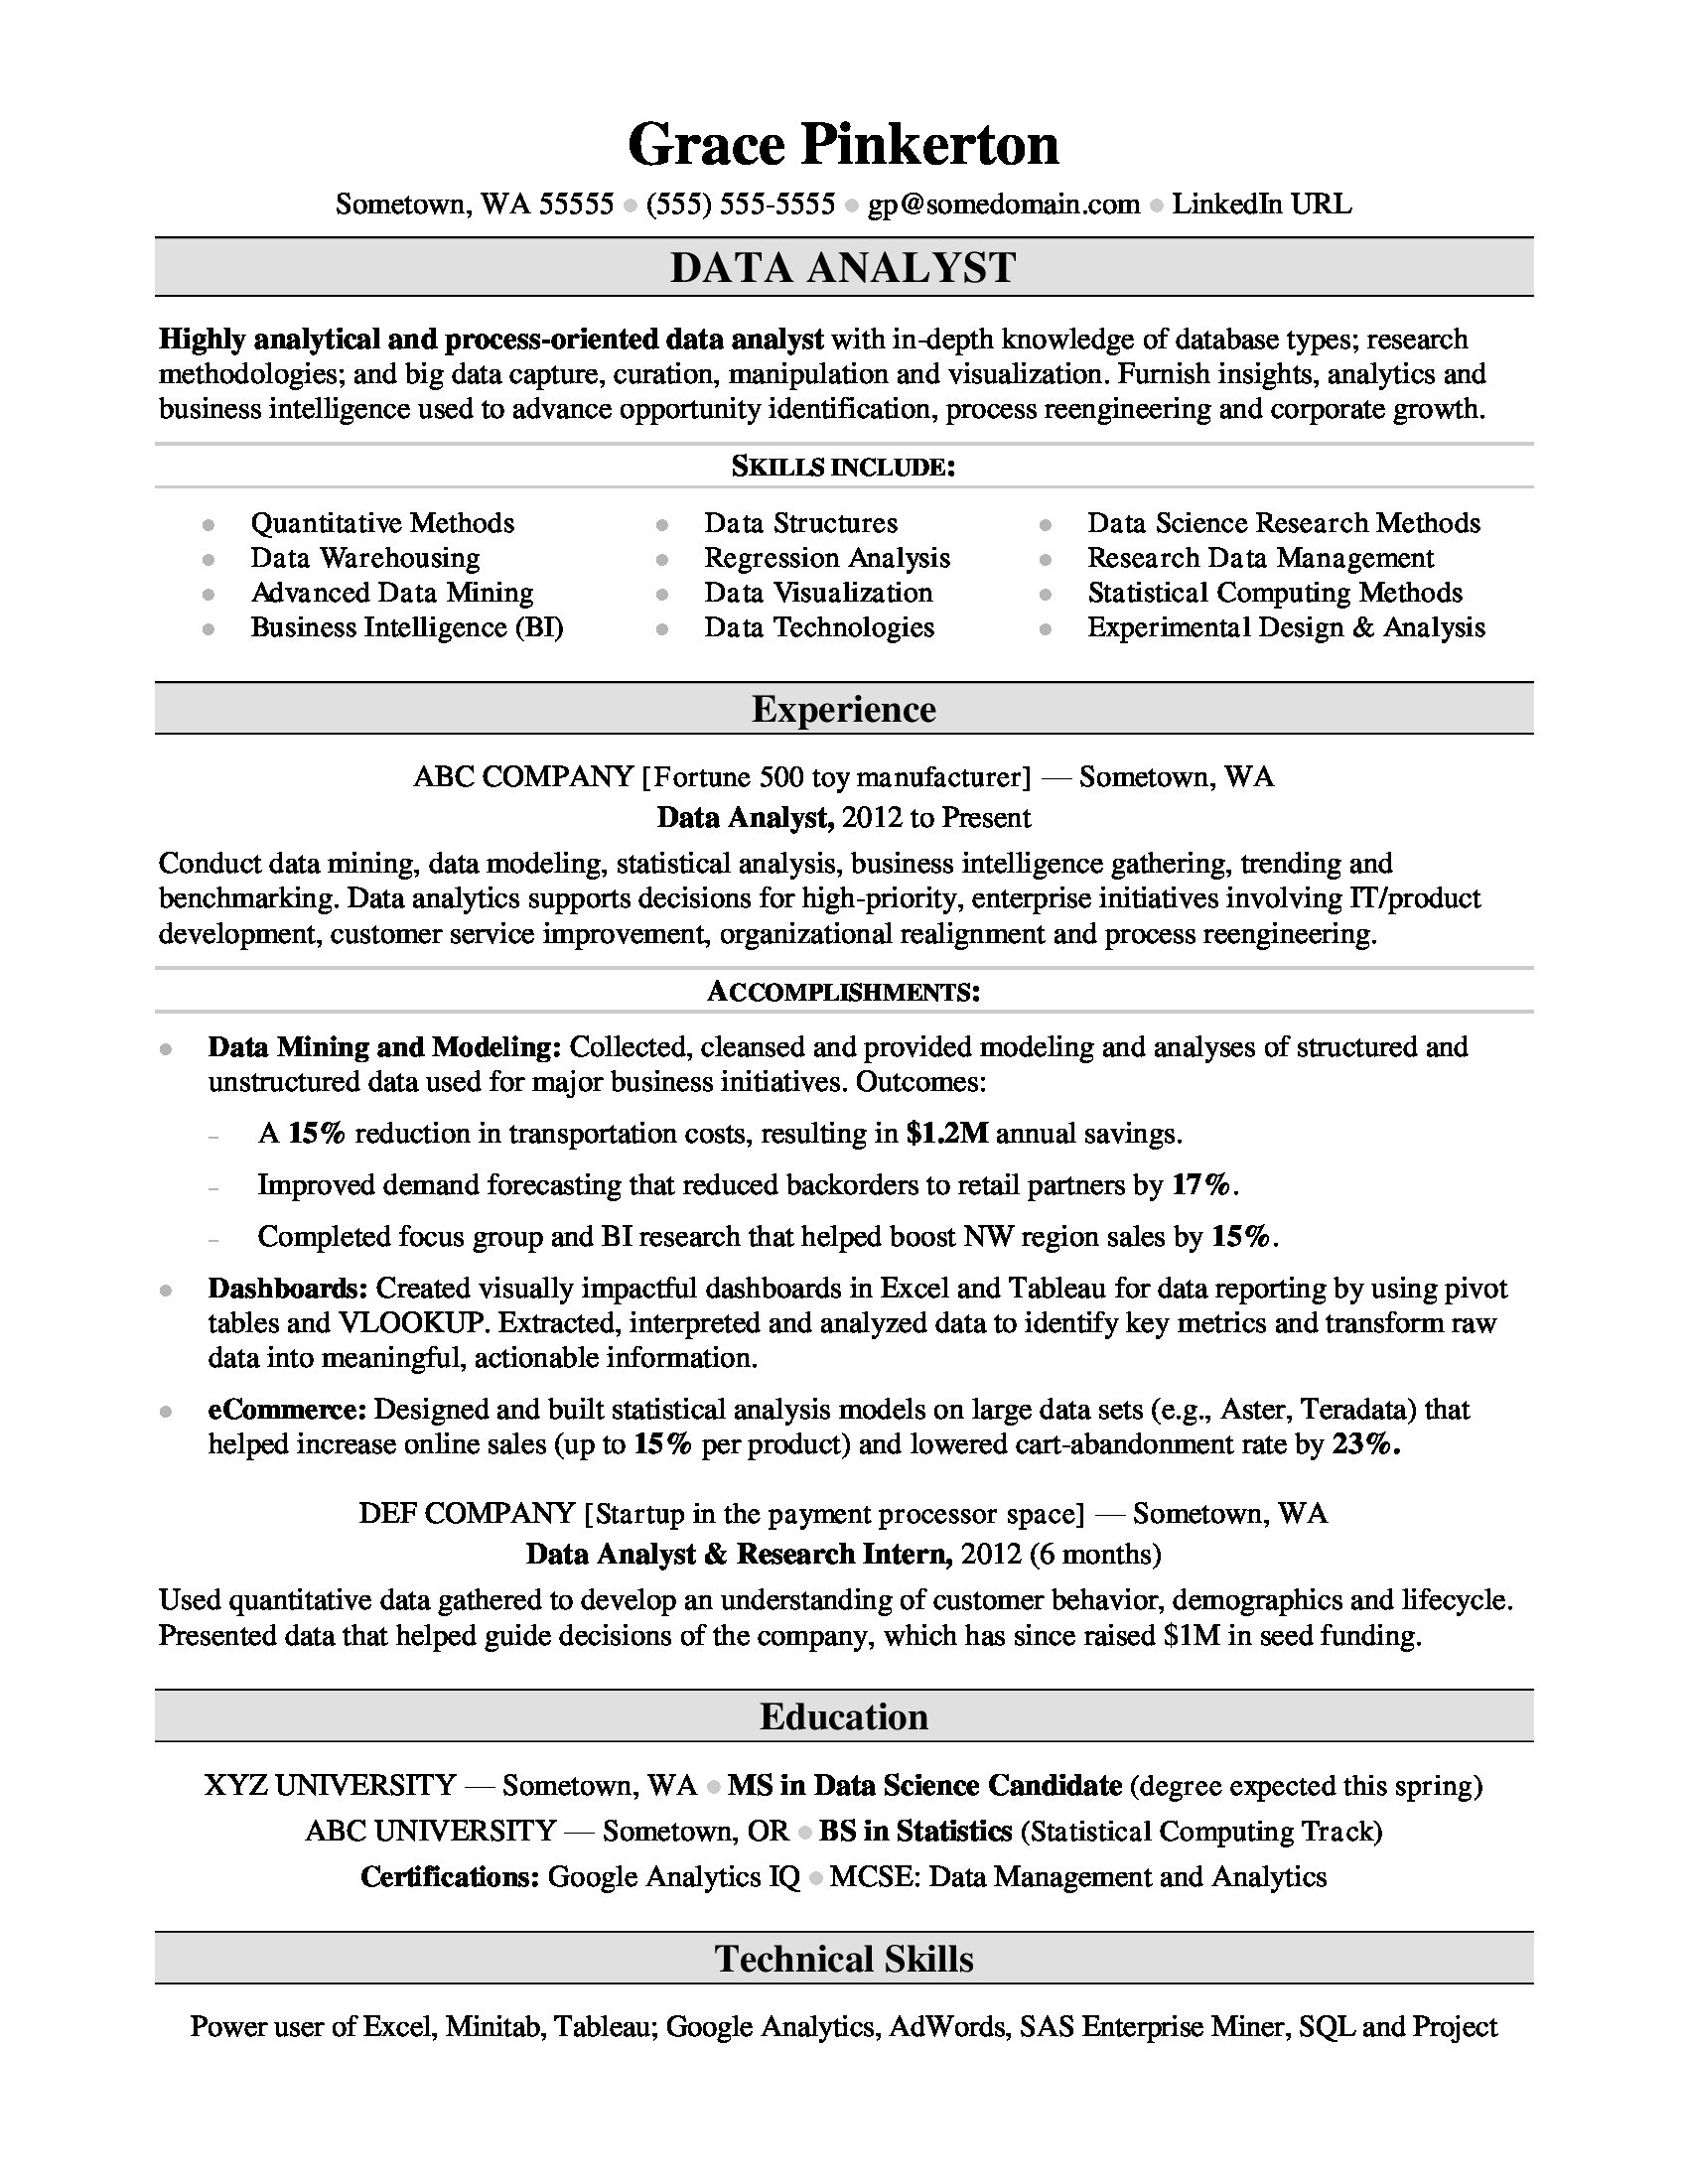 data analyst resume sample - Data Science Resume